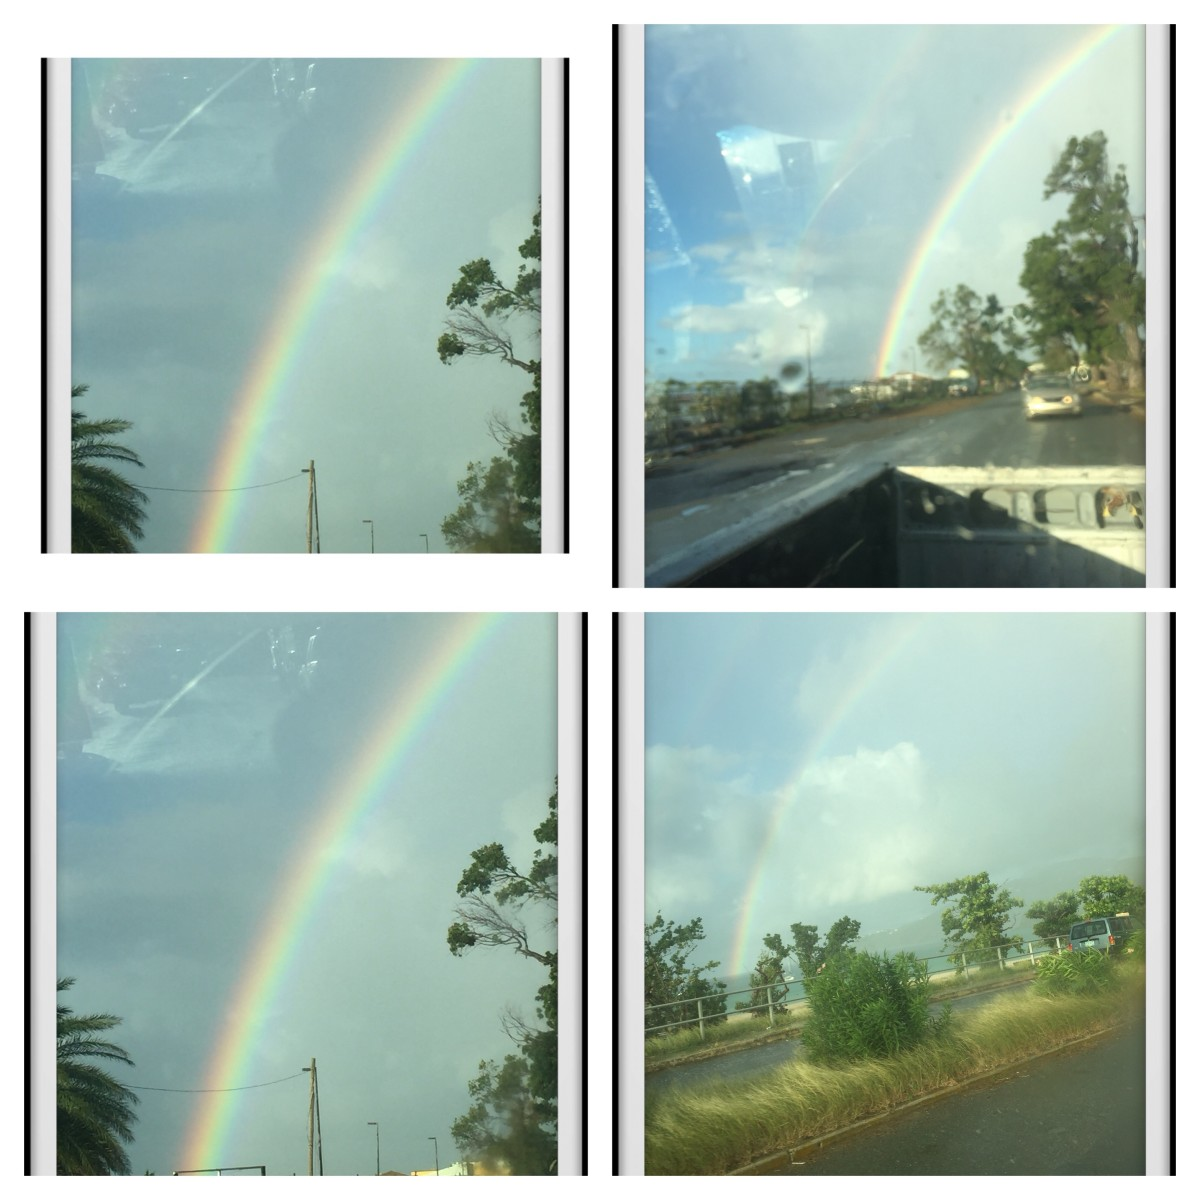 December 21, 2017 @ 7:27am Sunday. Notice the Rainbow driving looking back in the reaview Mirror. Nice.